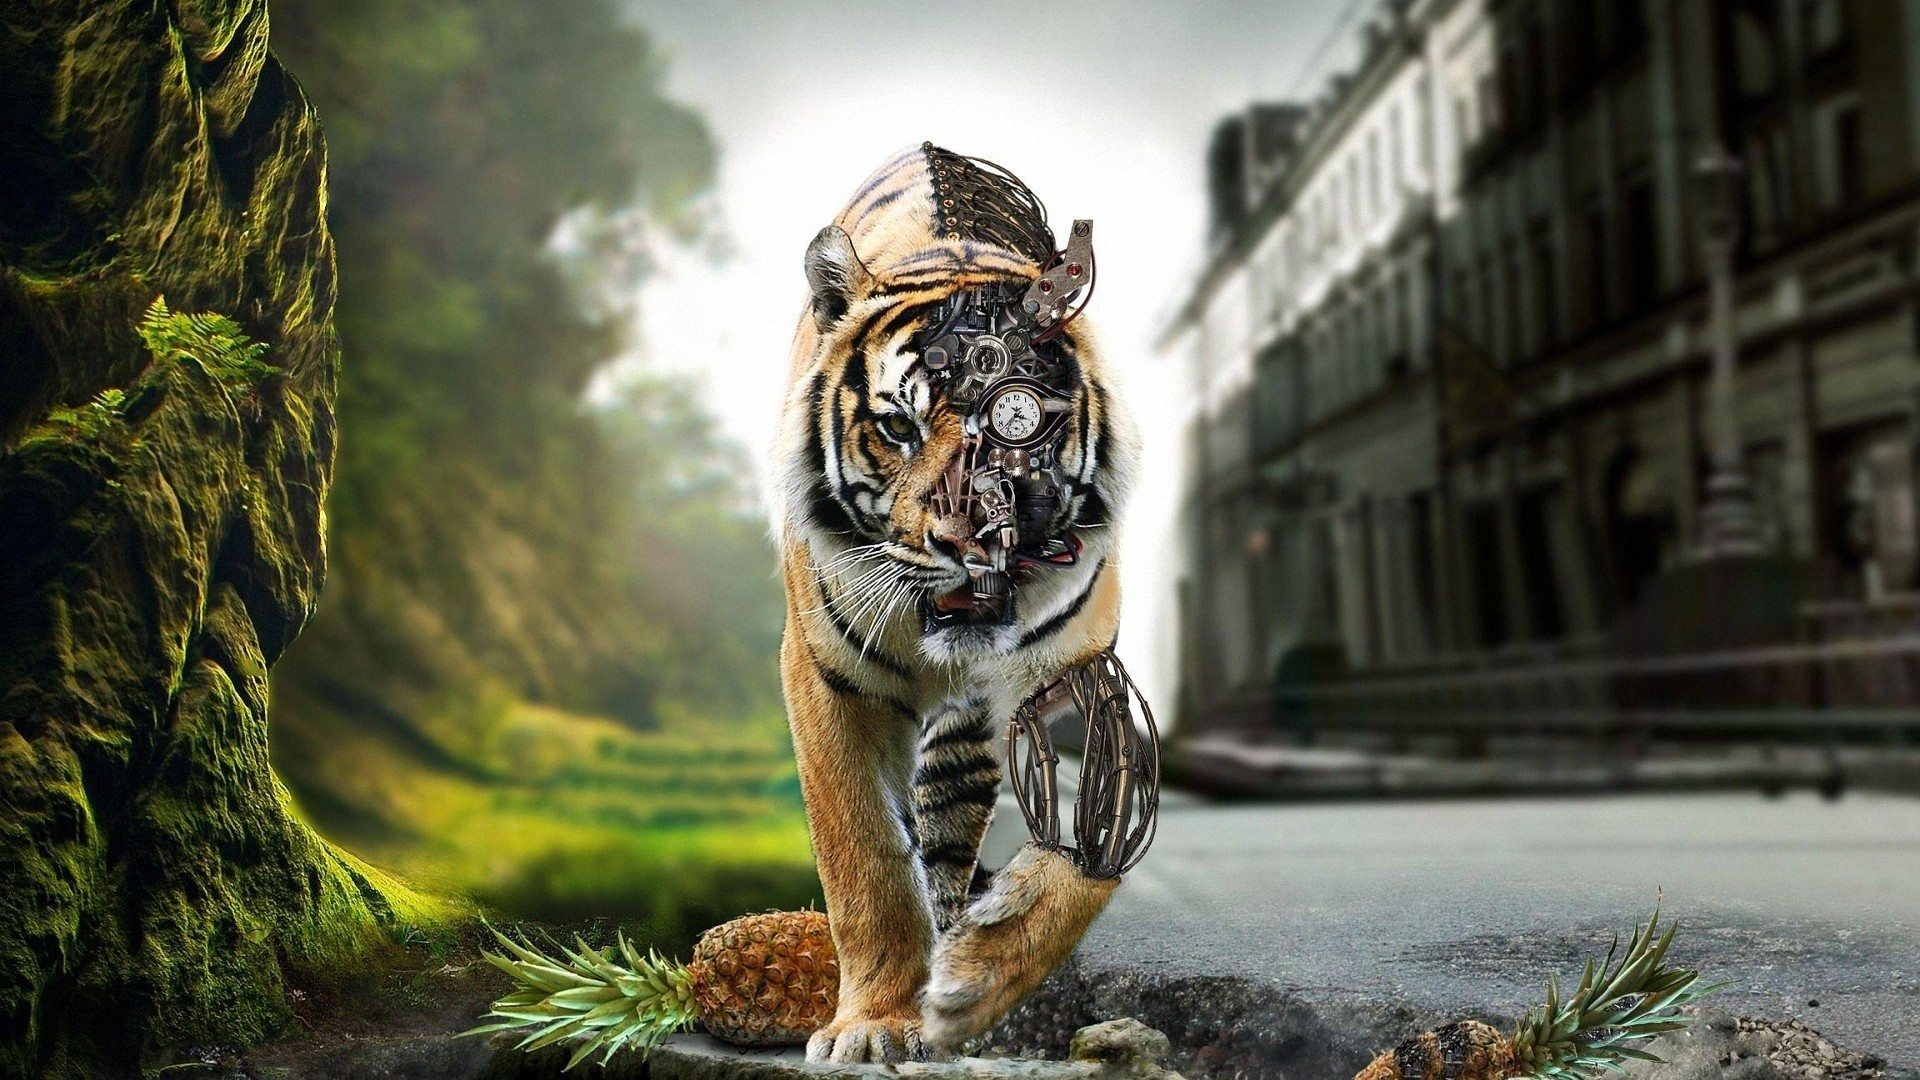 0 Tiger Wallpaper Full HD Awesome Fantasy Tiger 1080P full  HD Wallpapers